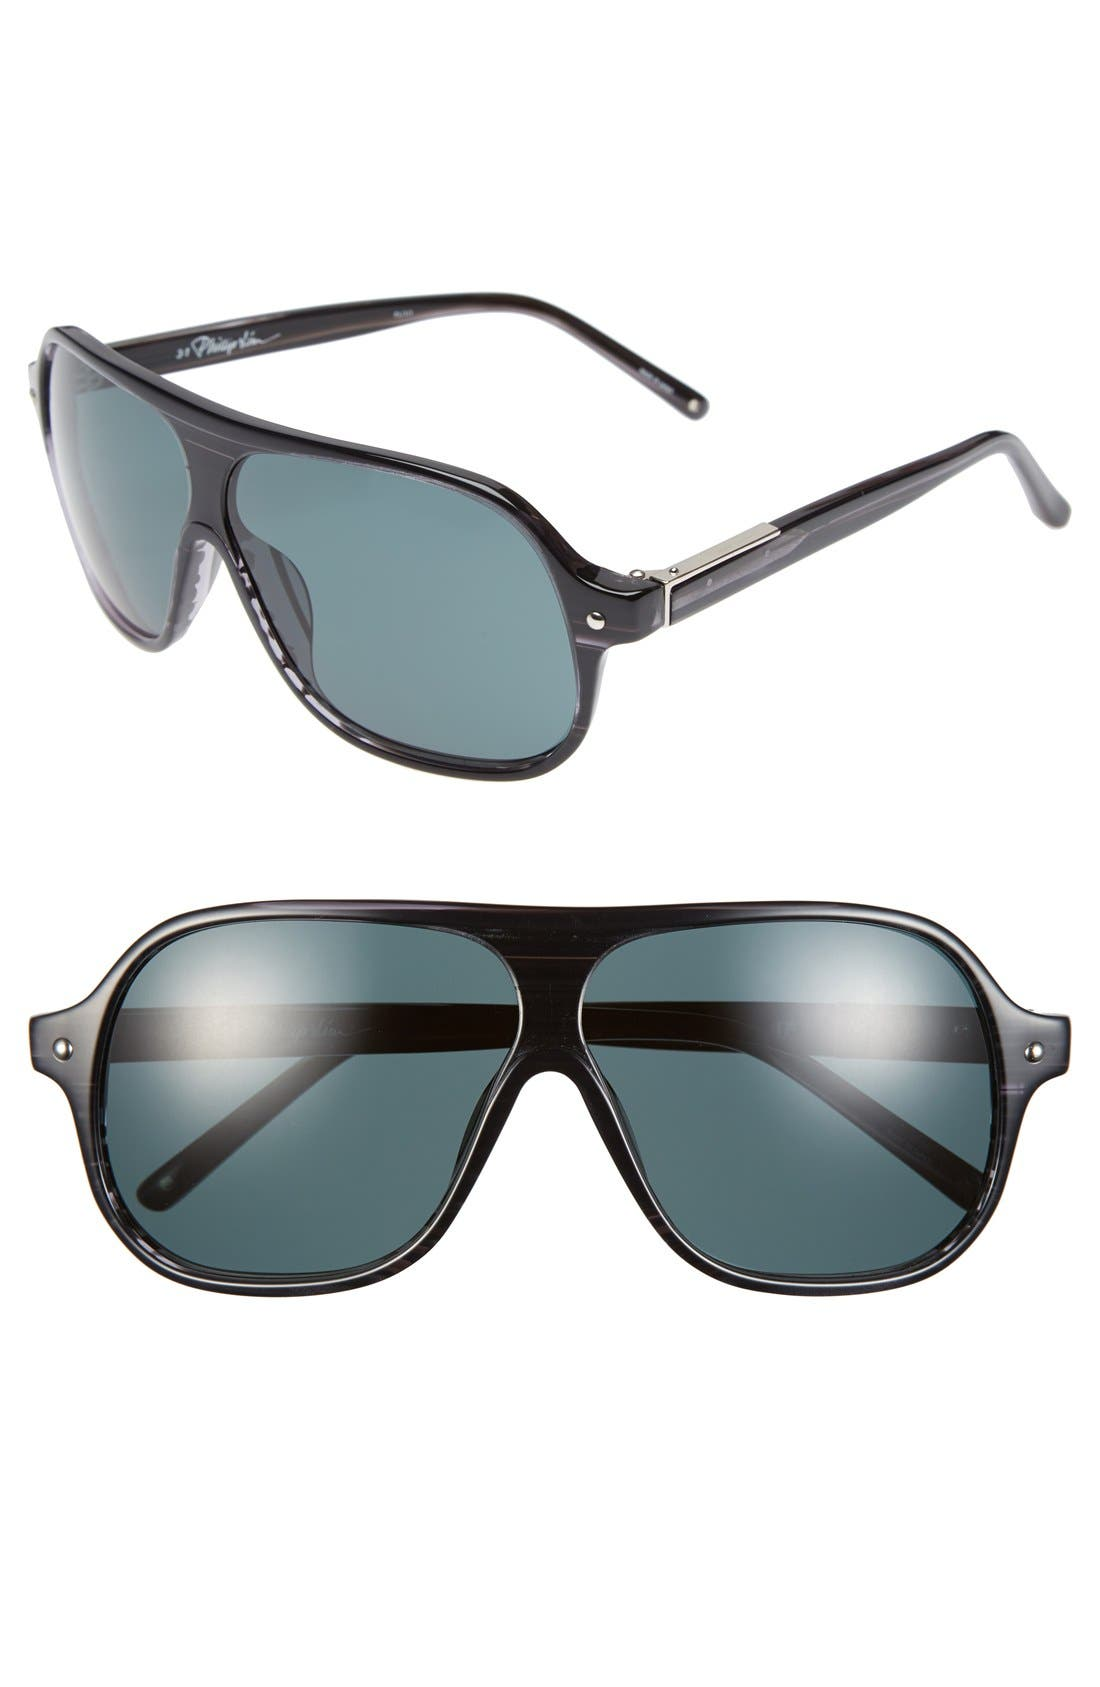 Main Image - 3.1 Phillip Lim 64mm Aviator Sunglasses